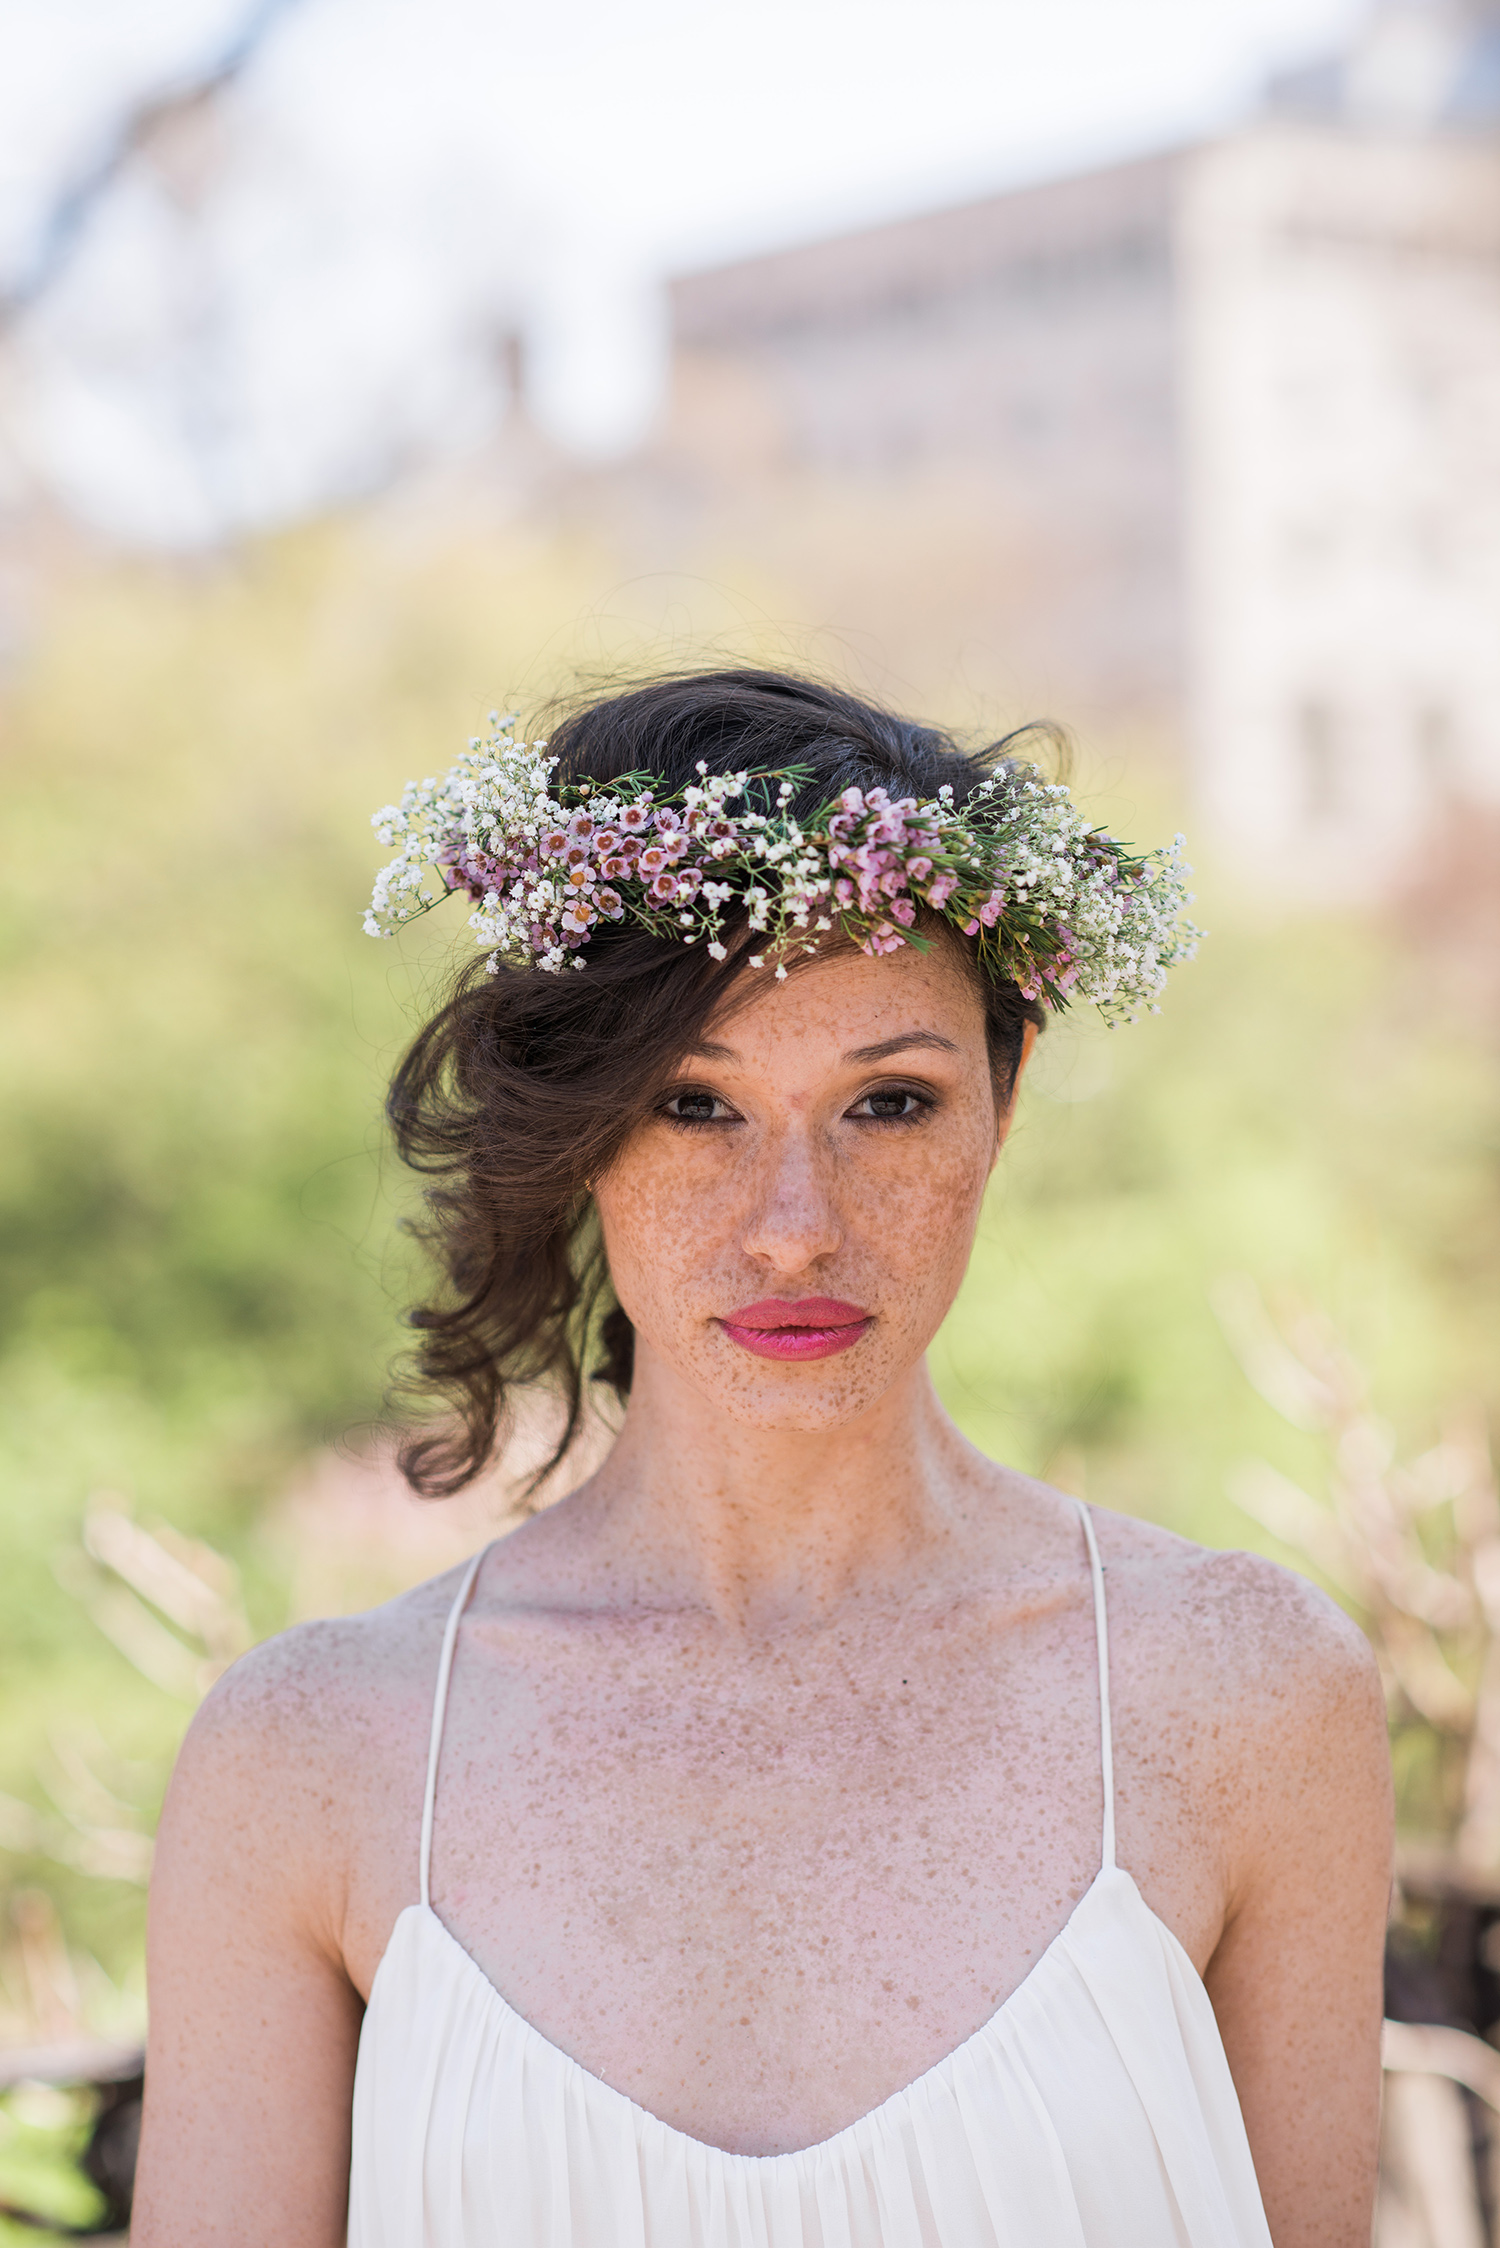 Spring flower crown for the rustic bride by stellar style events if youre looking for some more floral crown inspiration be sure to check our flower crown ideas for the boho chic bride the romantic bride izmirmasajfo